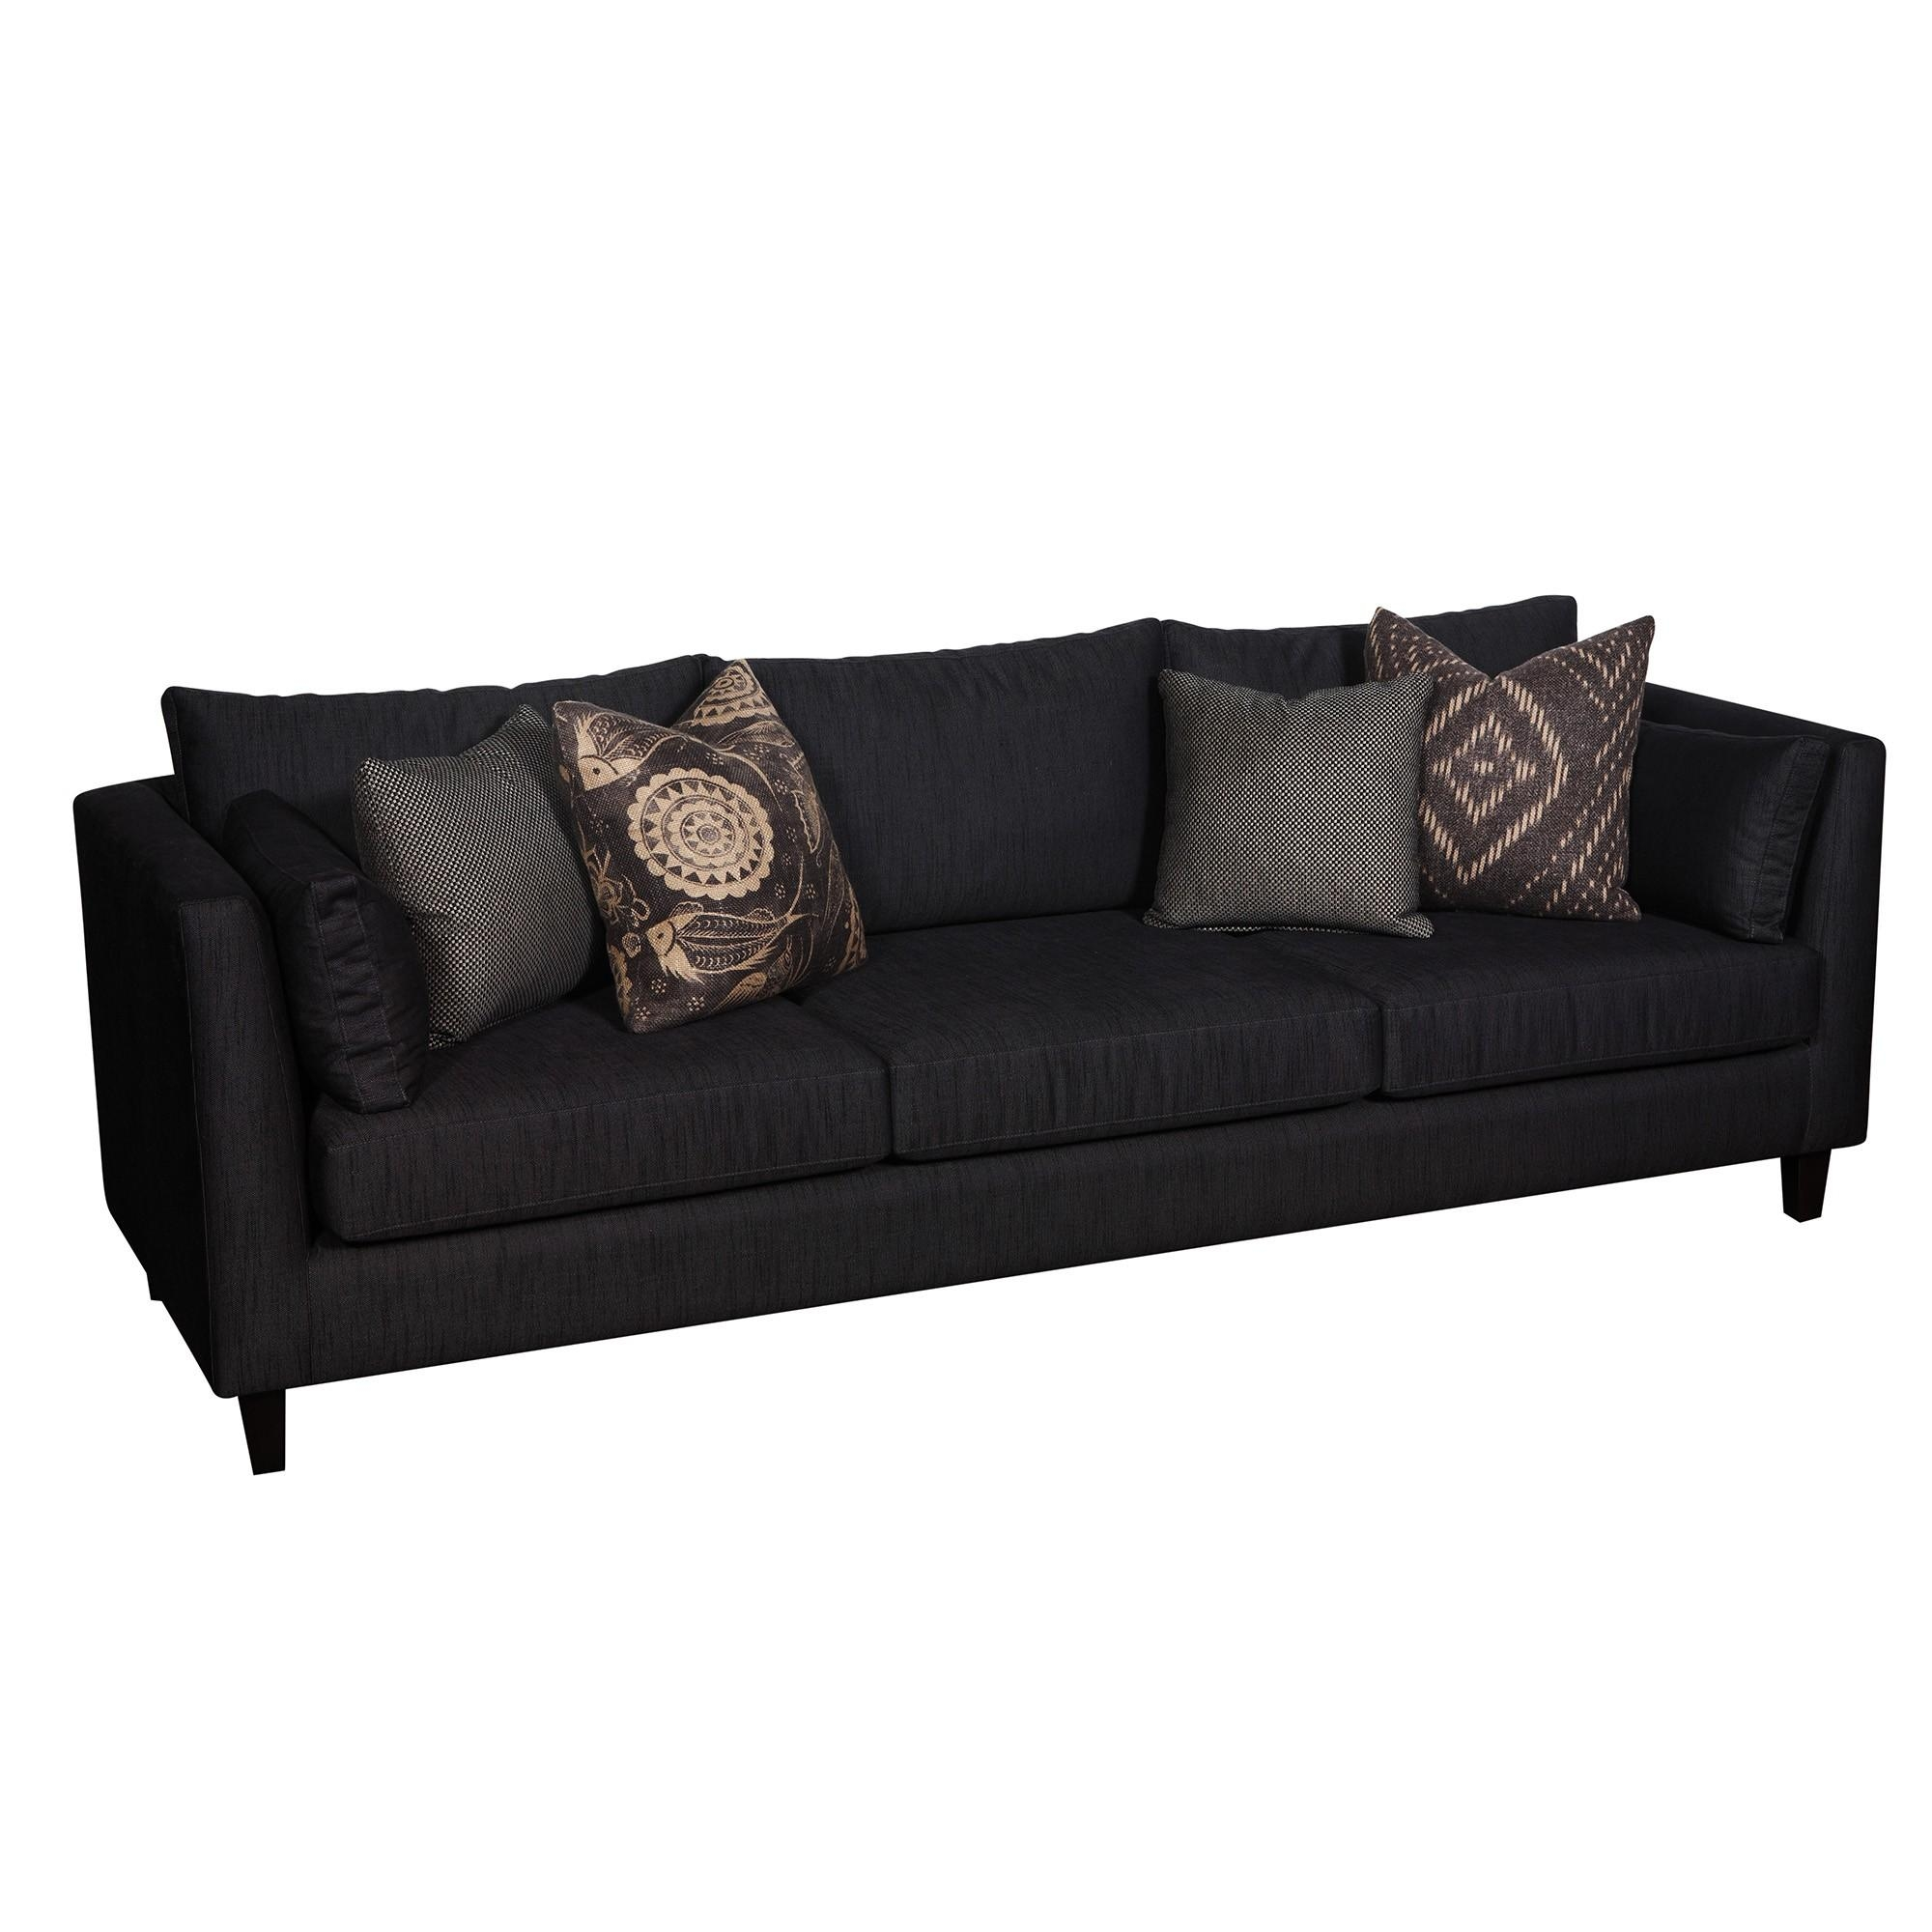 Harrison Sofa – Furniture Intended For Harrison Sofas (View 8 of 20)